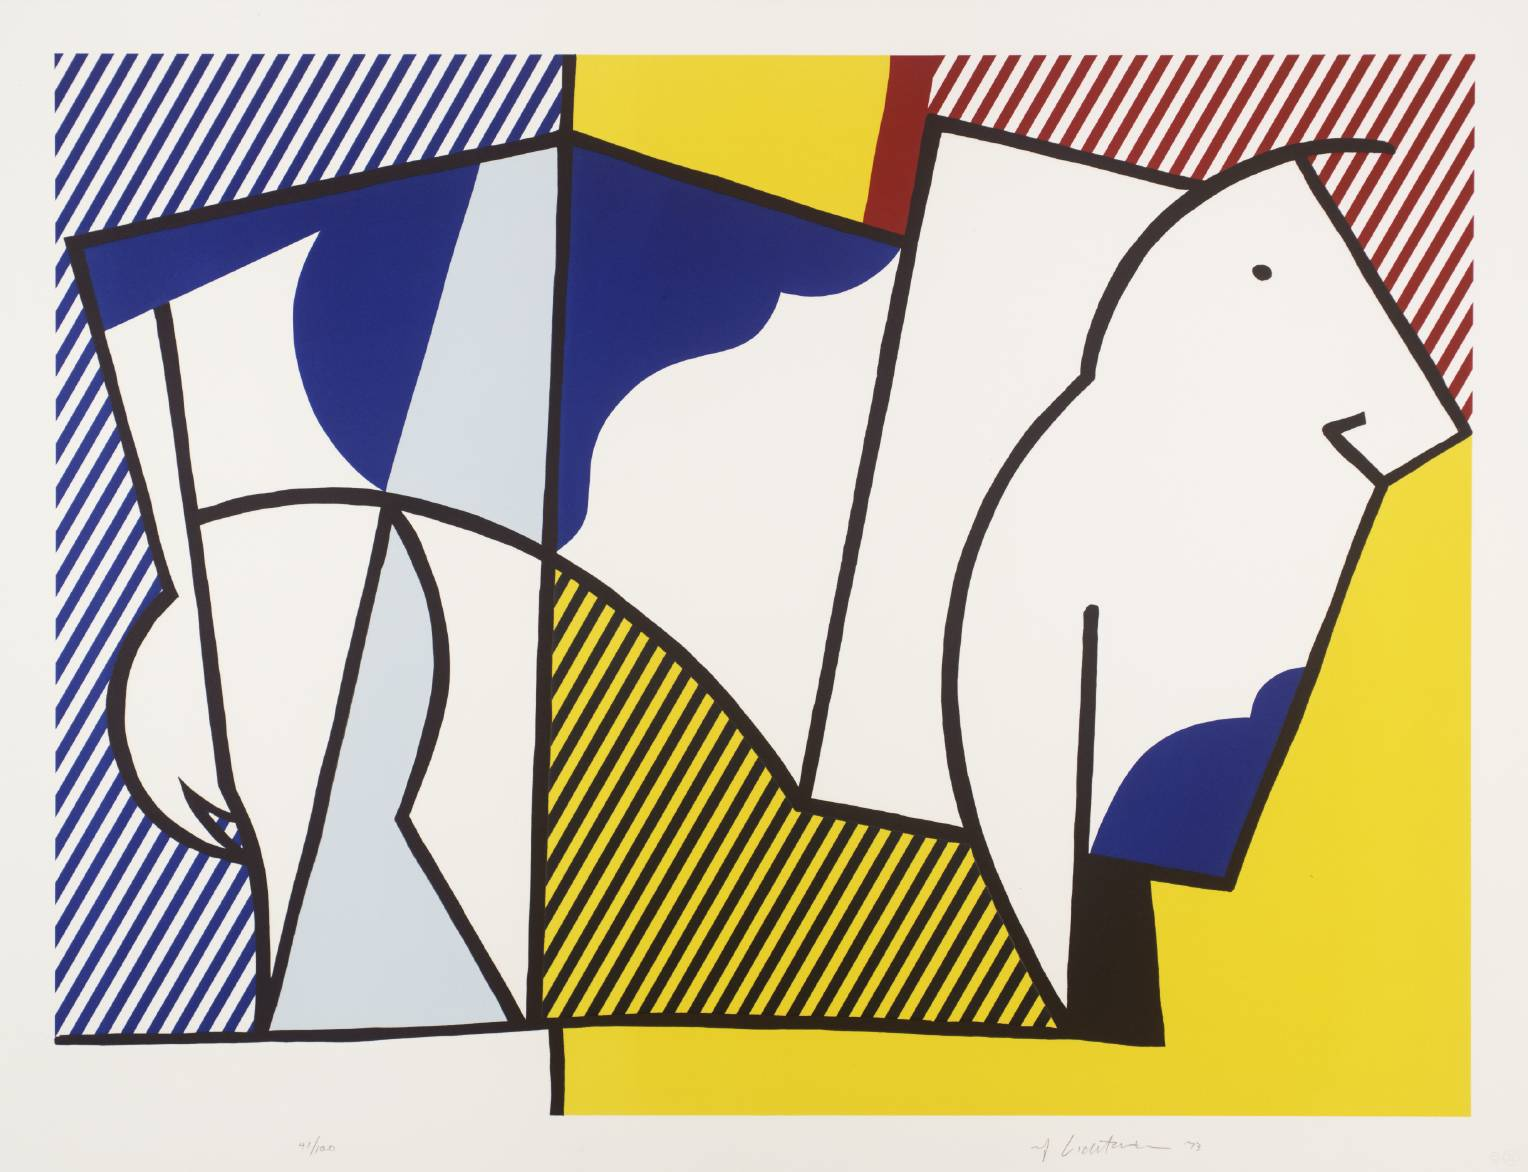 Bull III 1973 by Roy Lichtenstein 1923-1997